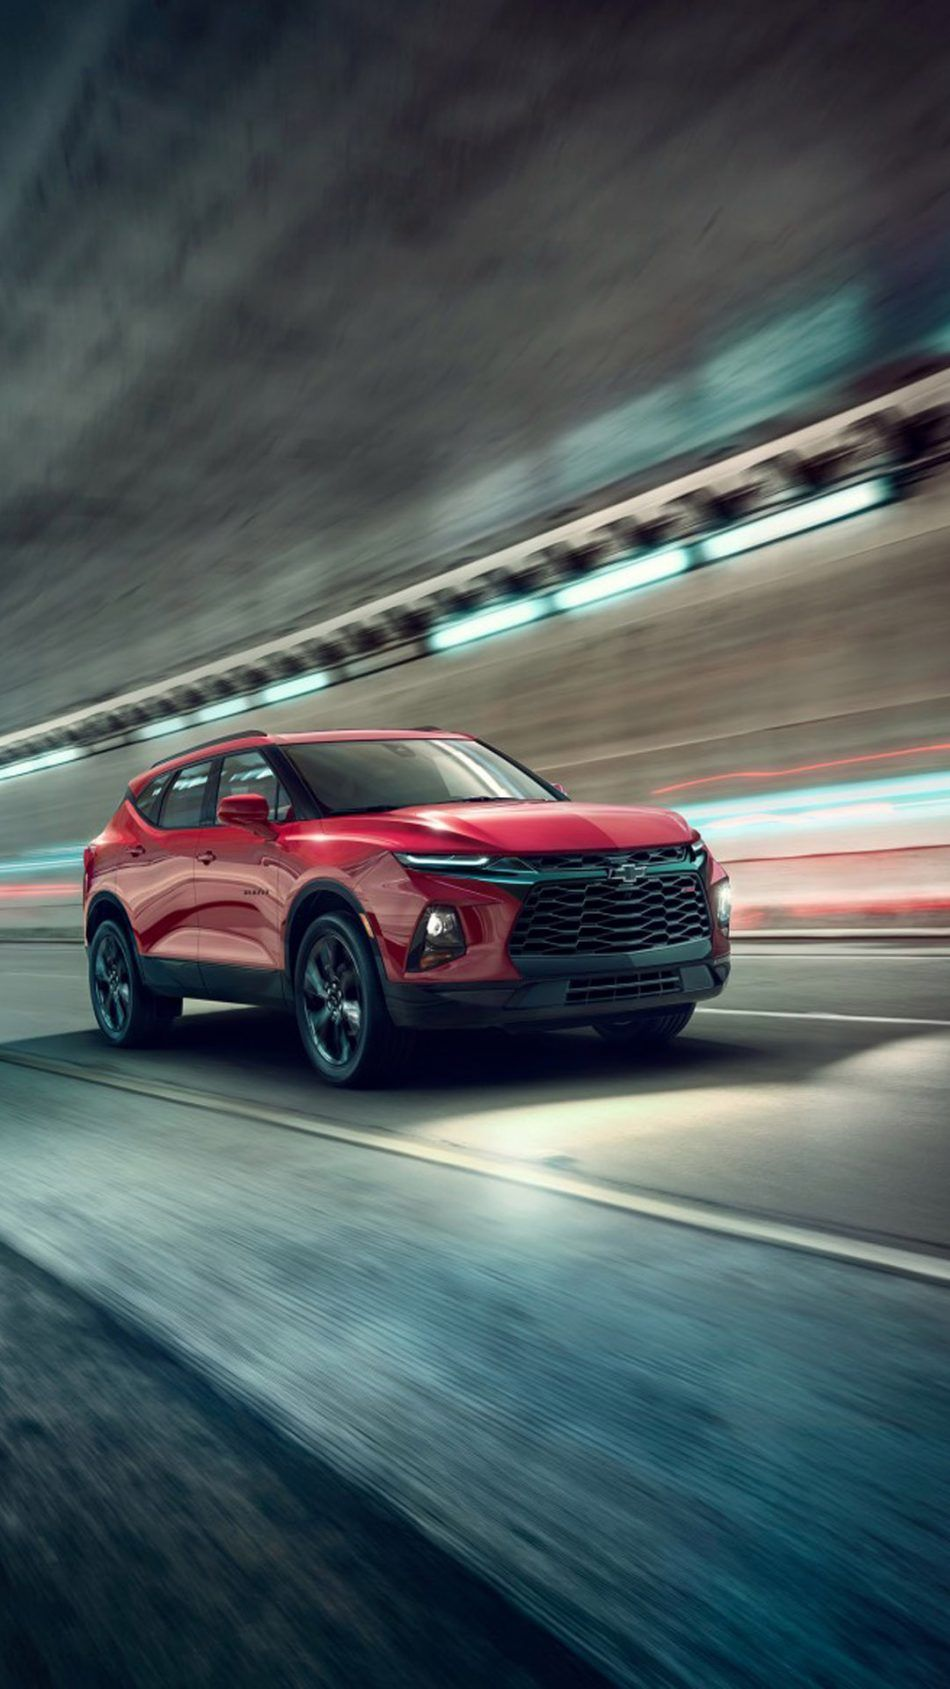 Red Chevrolet Blazer Rs Suv With Images Chevrolet Blazer Suv